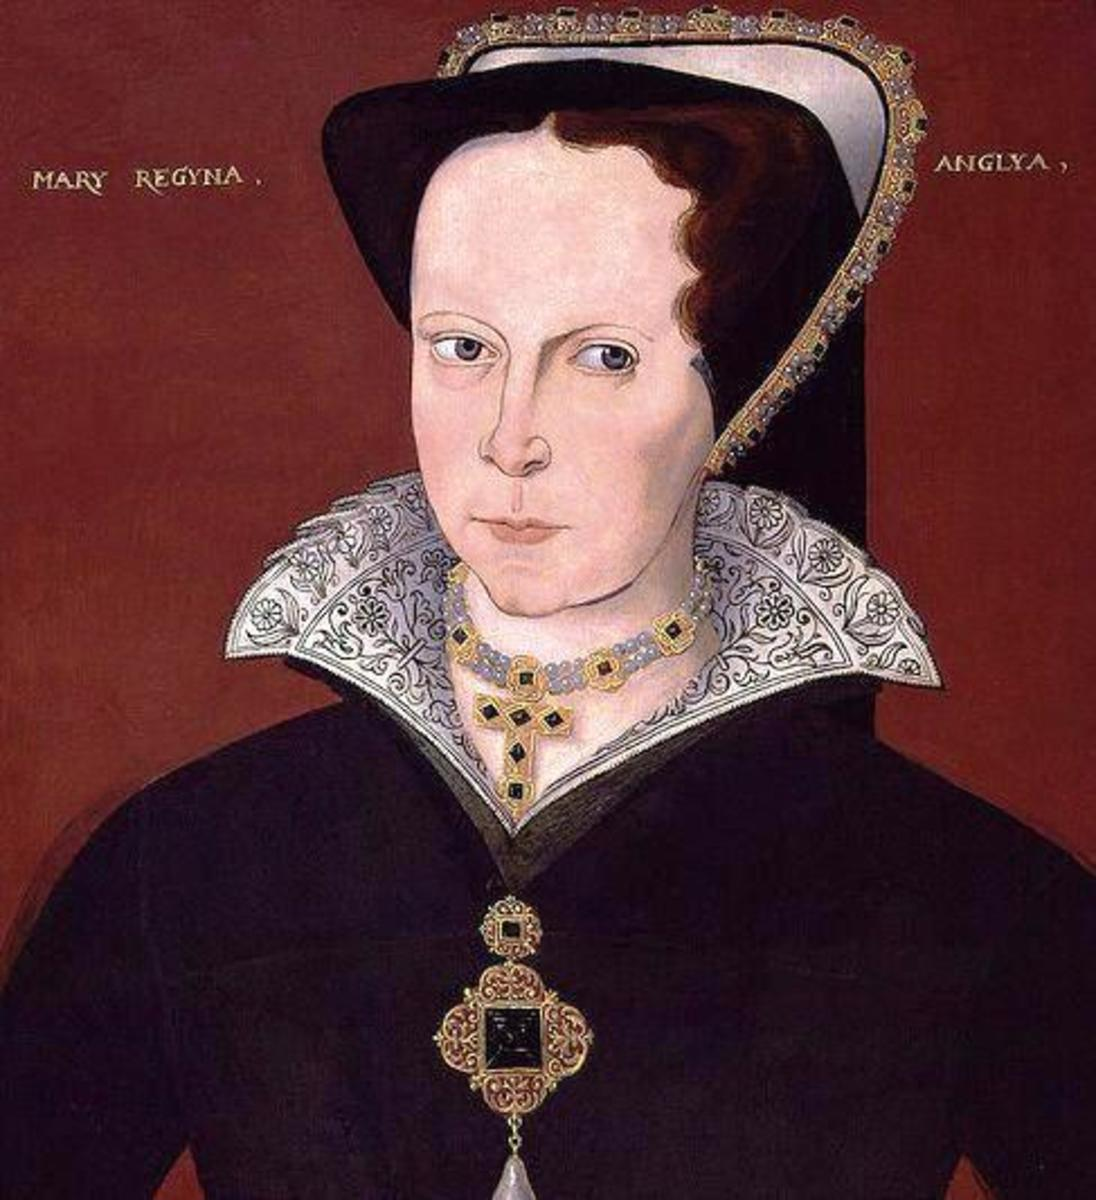 Not new: Queen Mary 1 of England in the 16th Century had two phantom pregnancies